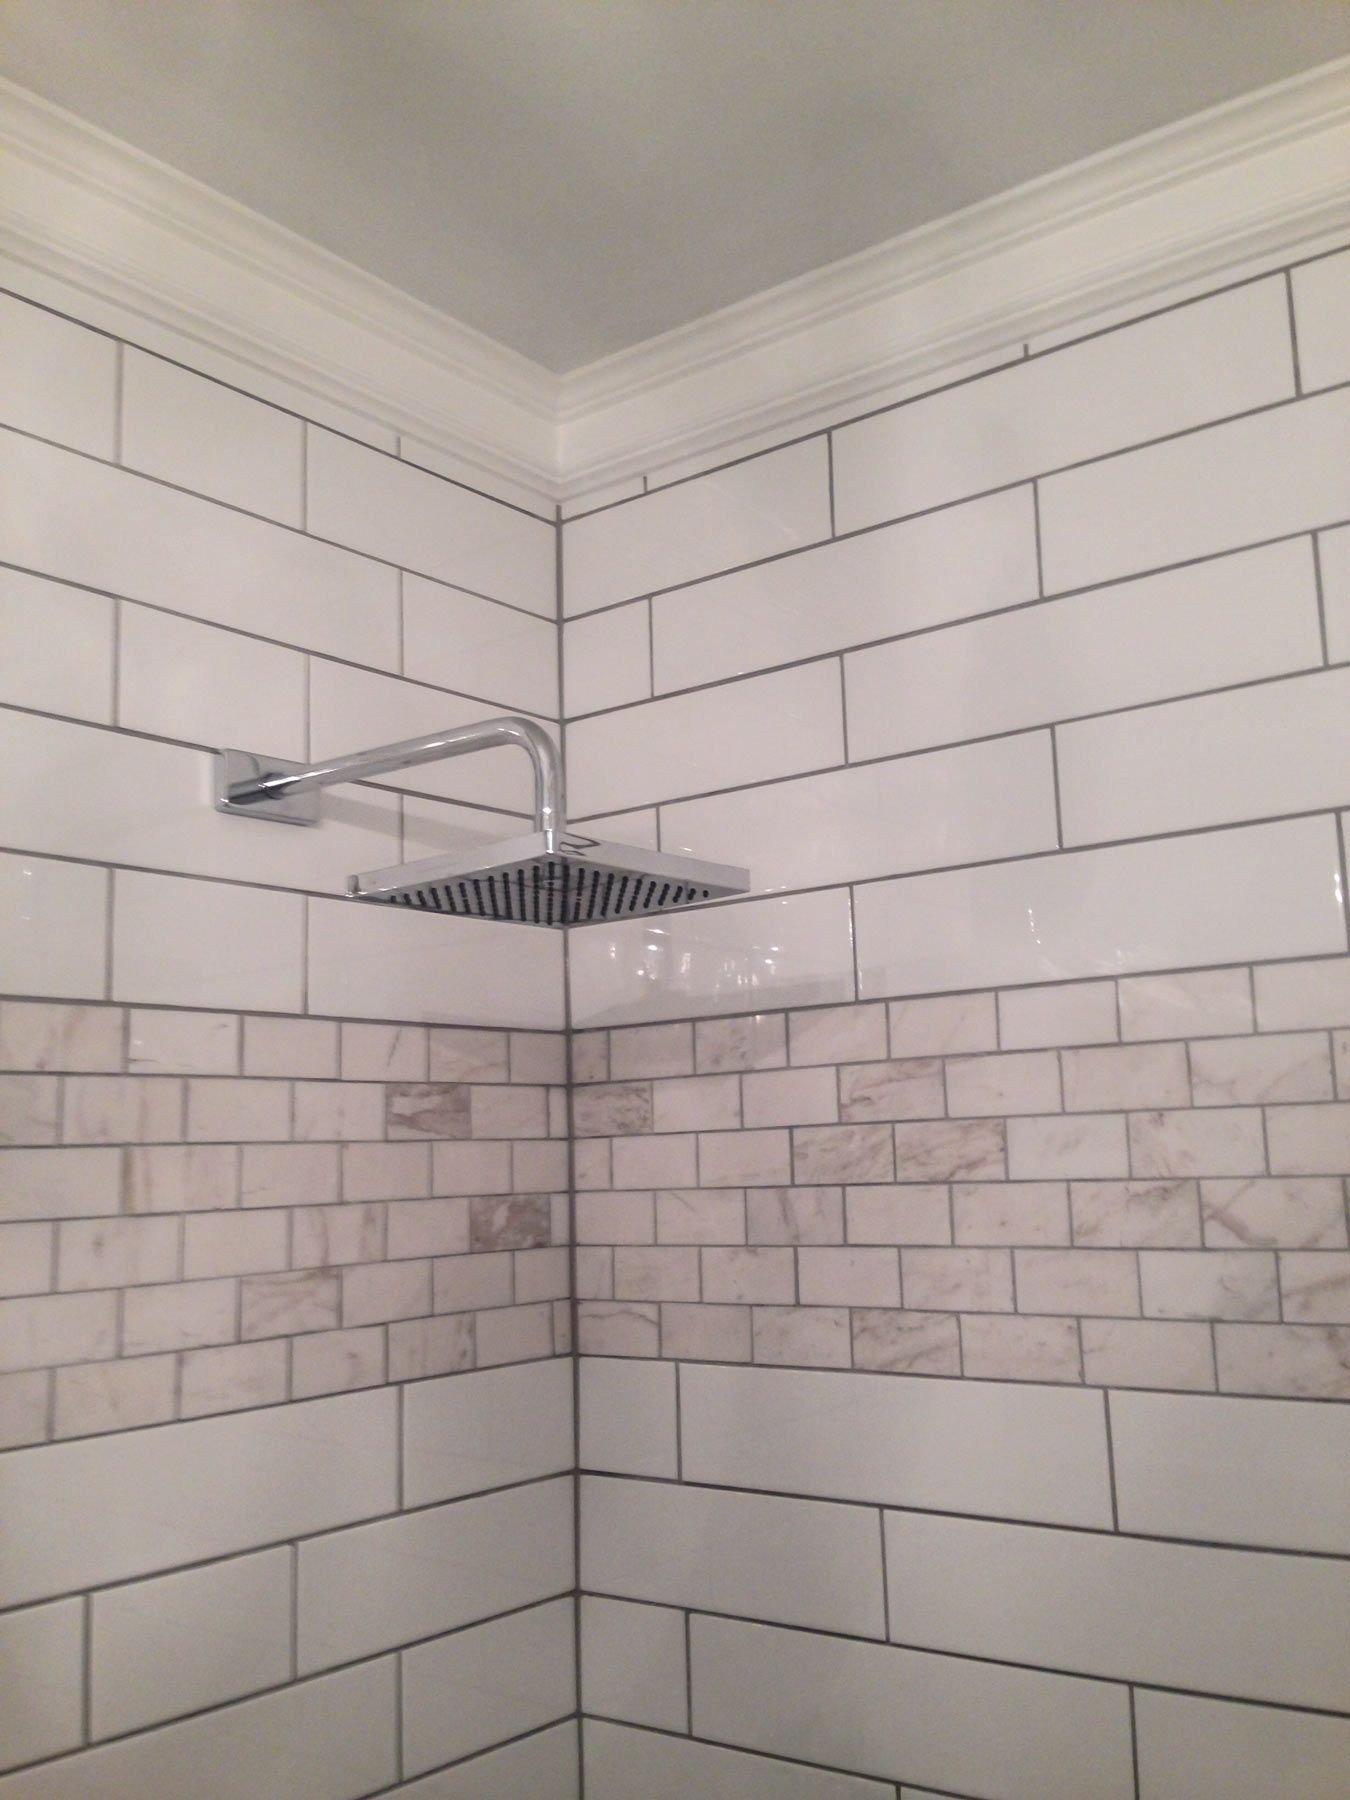 You Know What S Great About Udecor S Polyurethane Molding It S Waterproof Worry No More About Trim In Mold In Bathroom Bathroom Remodel Shower Shower Remodel